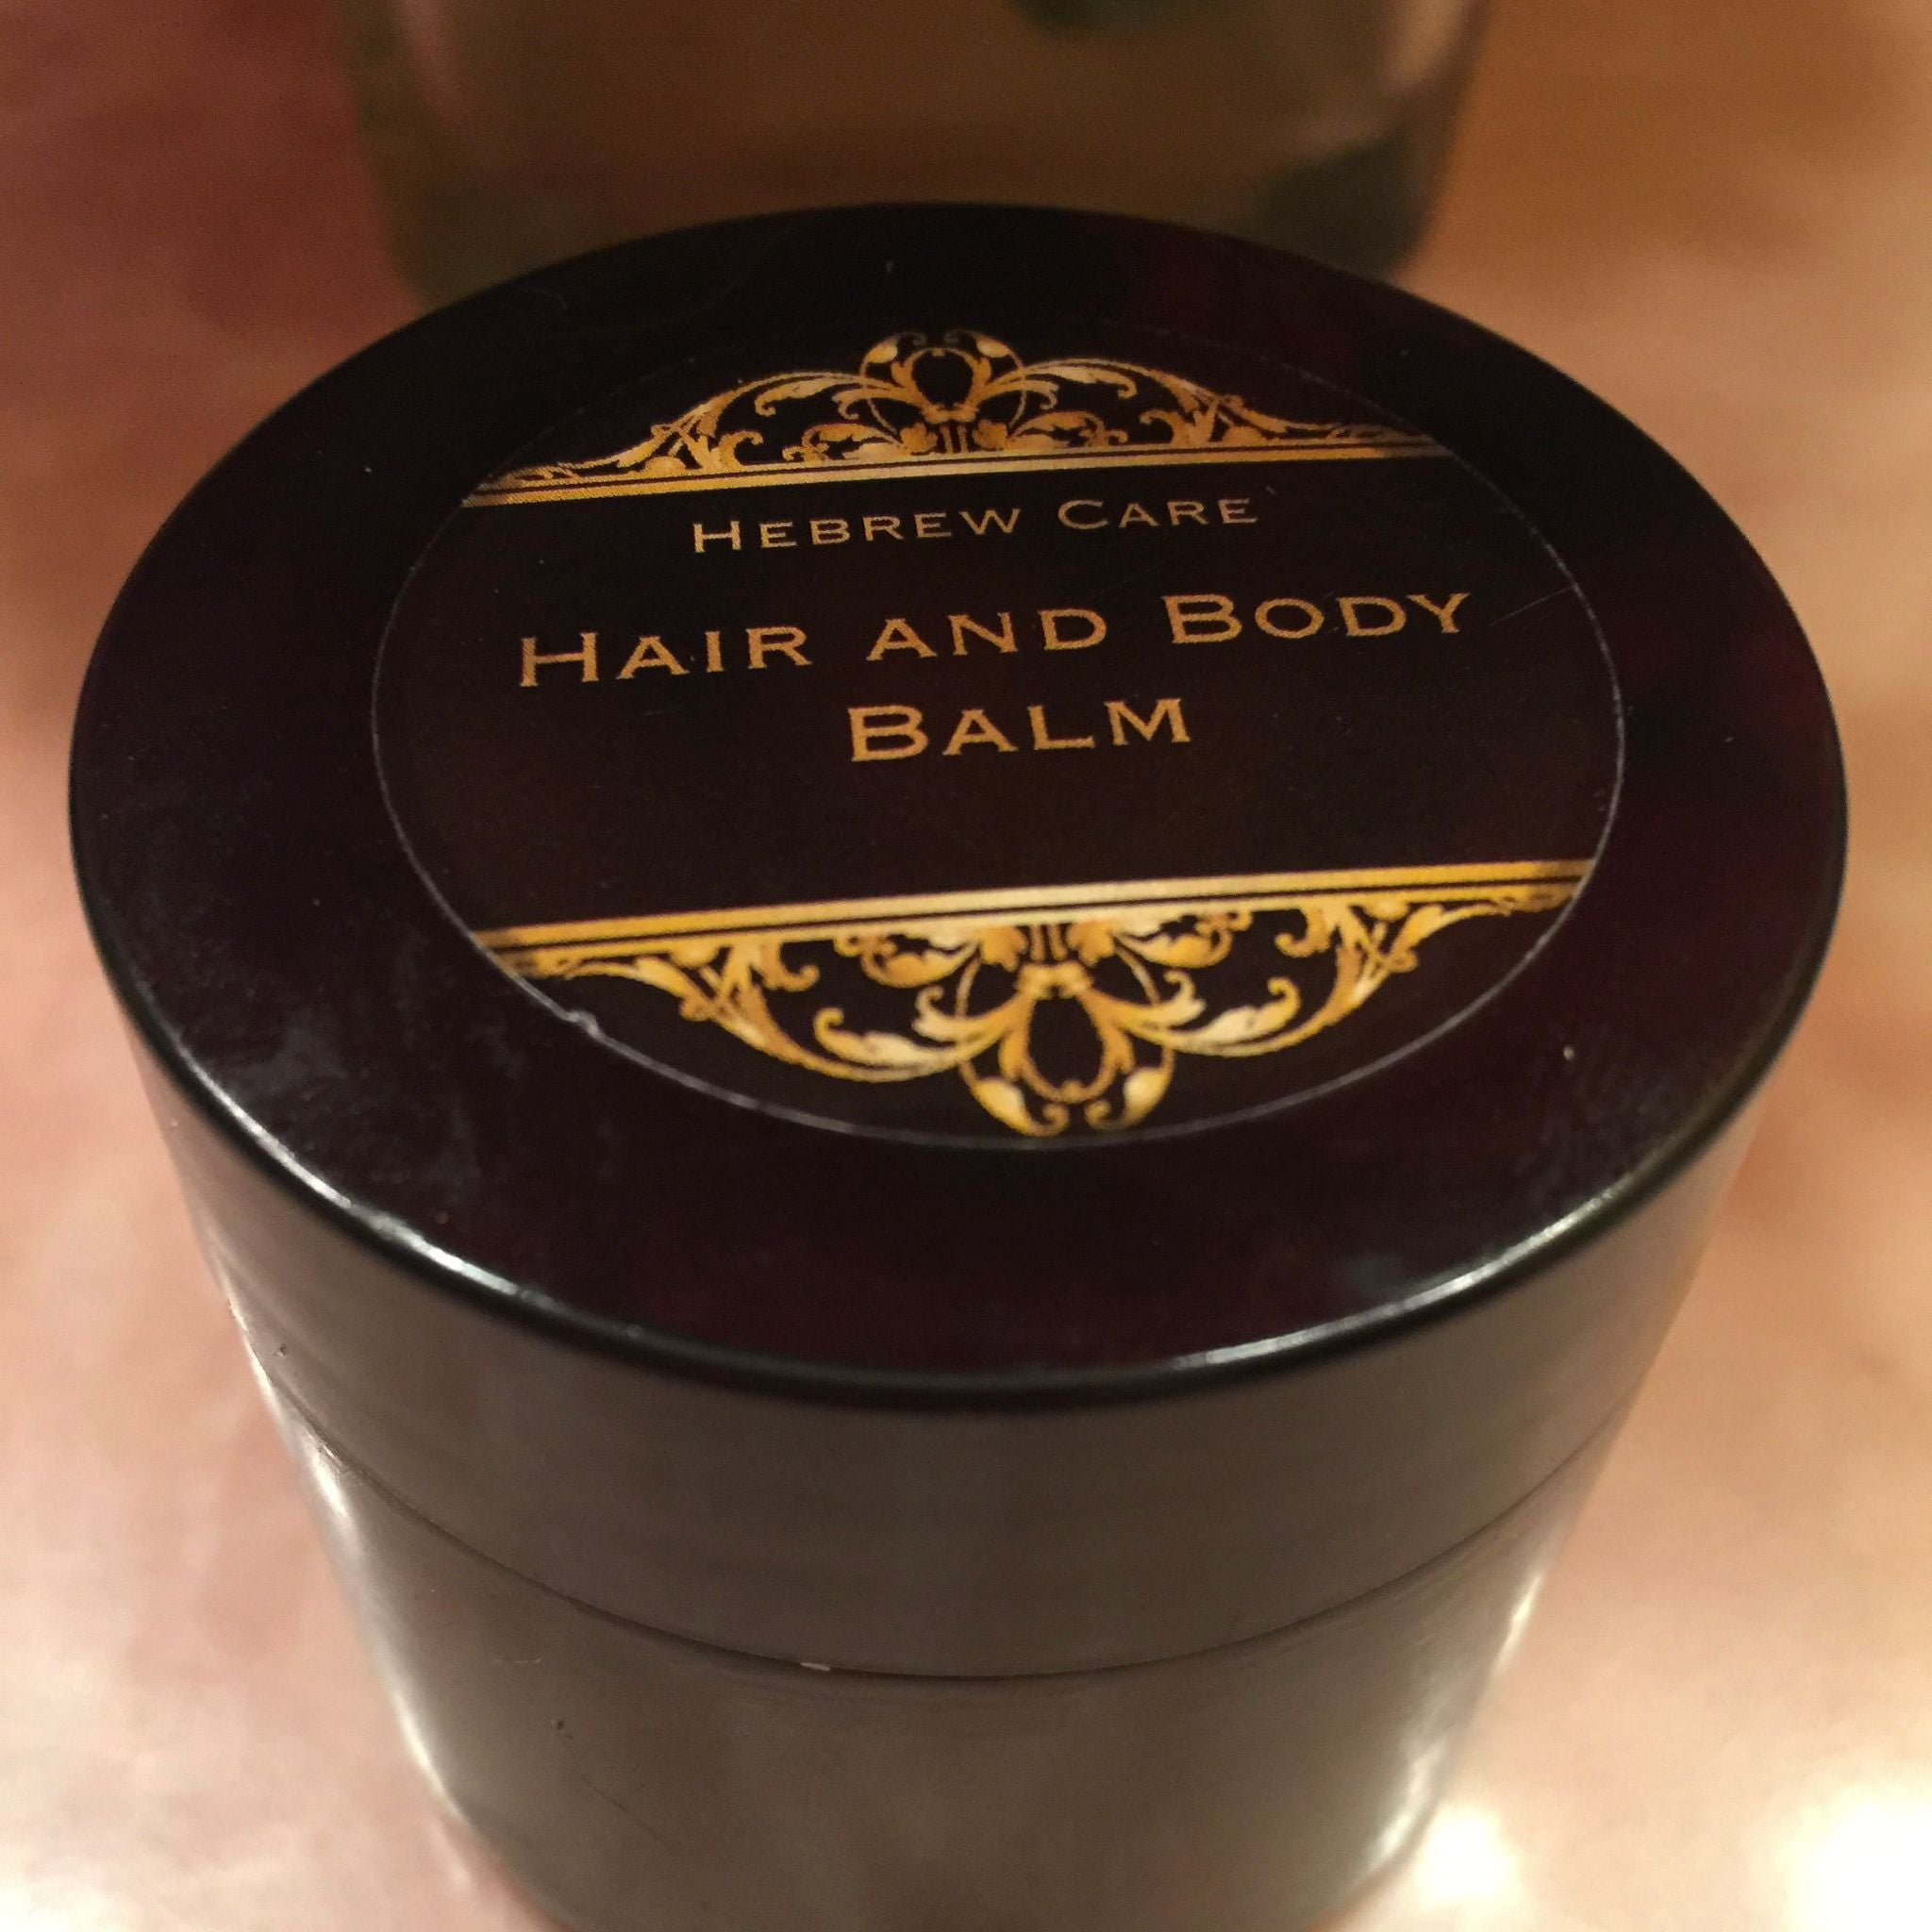 Beeswax Moisturizing Hair and Body Balm